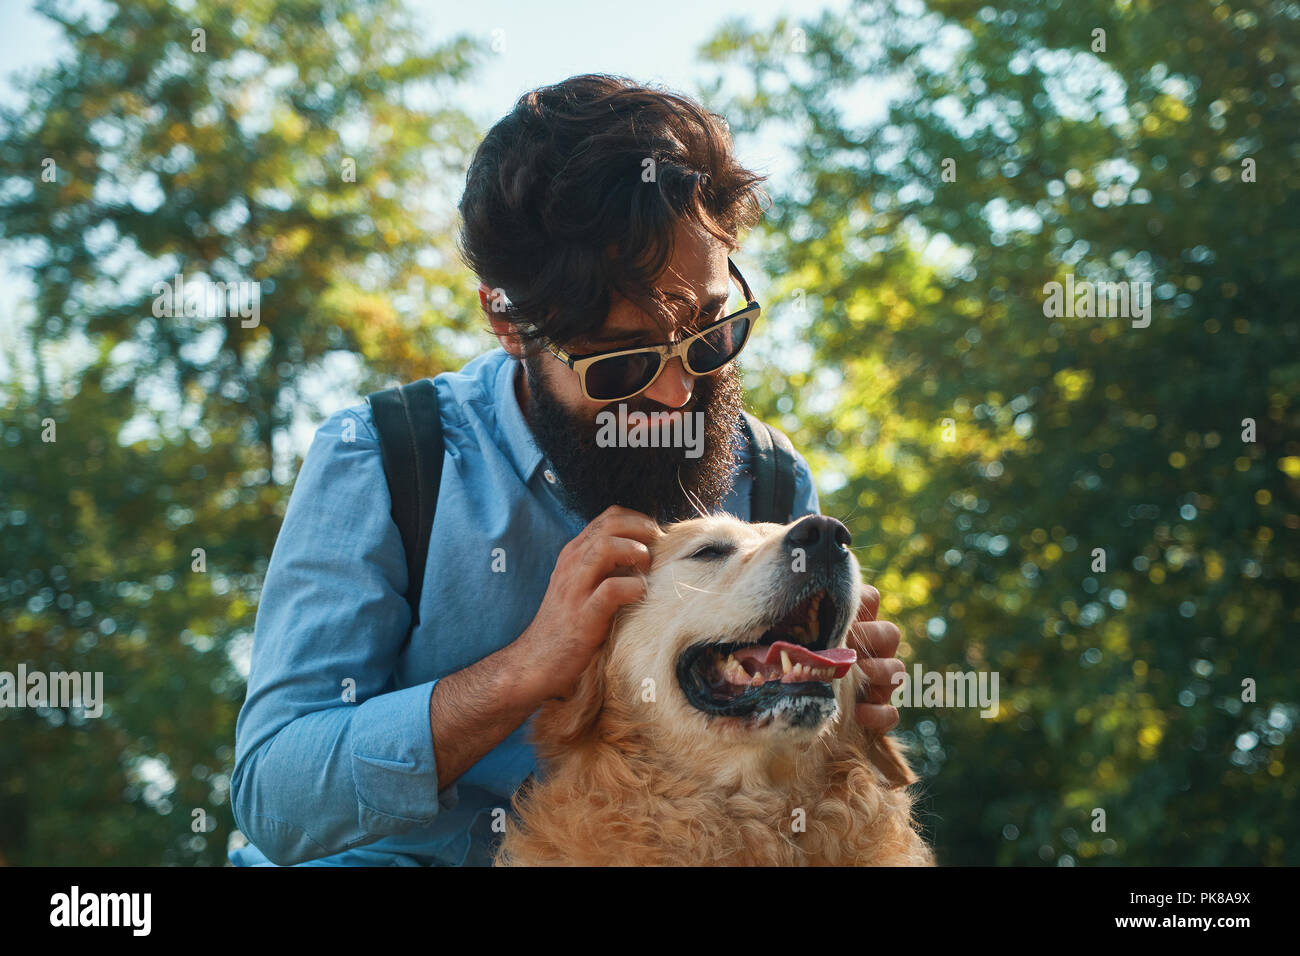 Man and dog having fun, playing, making funny faces while resting in the park. Life is beautiful, best friends concept. Stock Photo